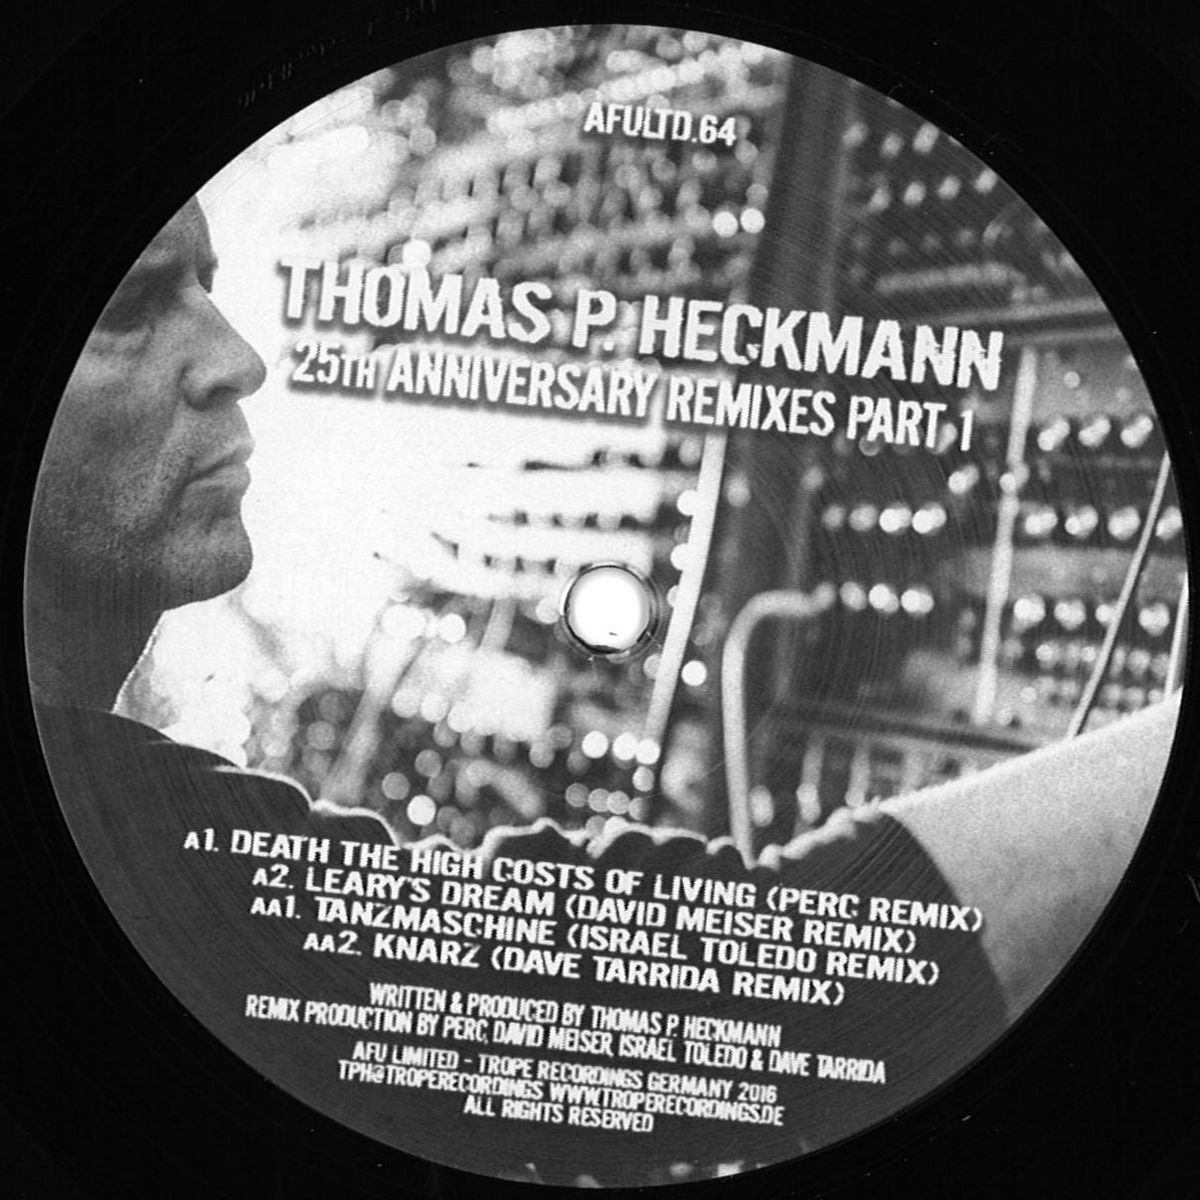 Thomas P. Heckmann - Leary's Dream (David Meiser Remix)_nrfmagazine